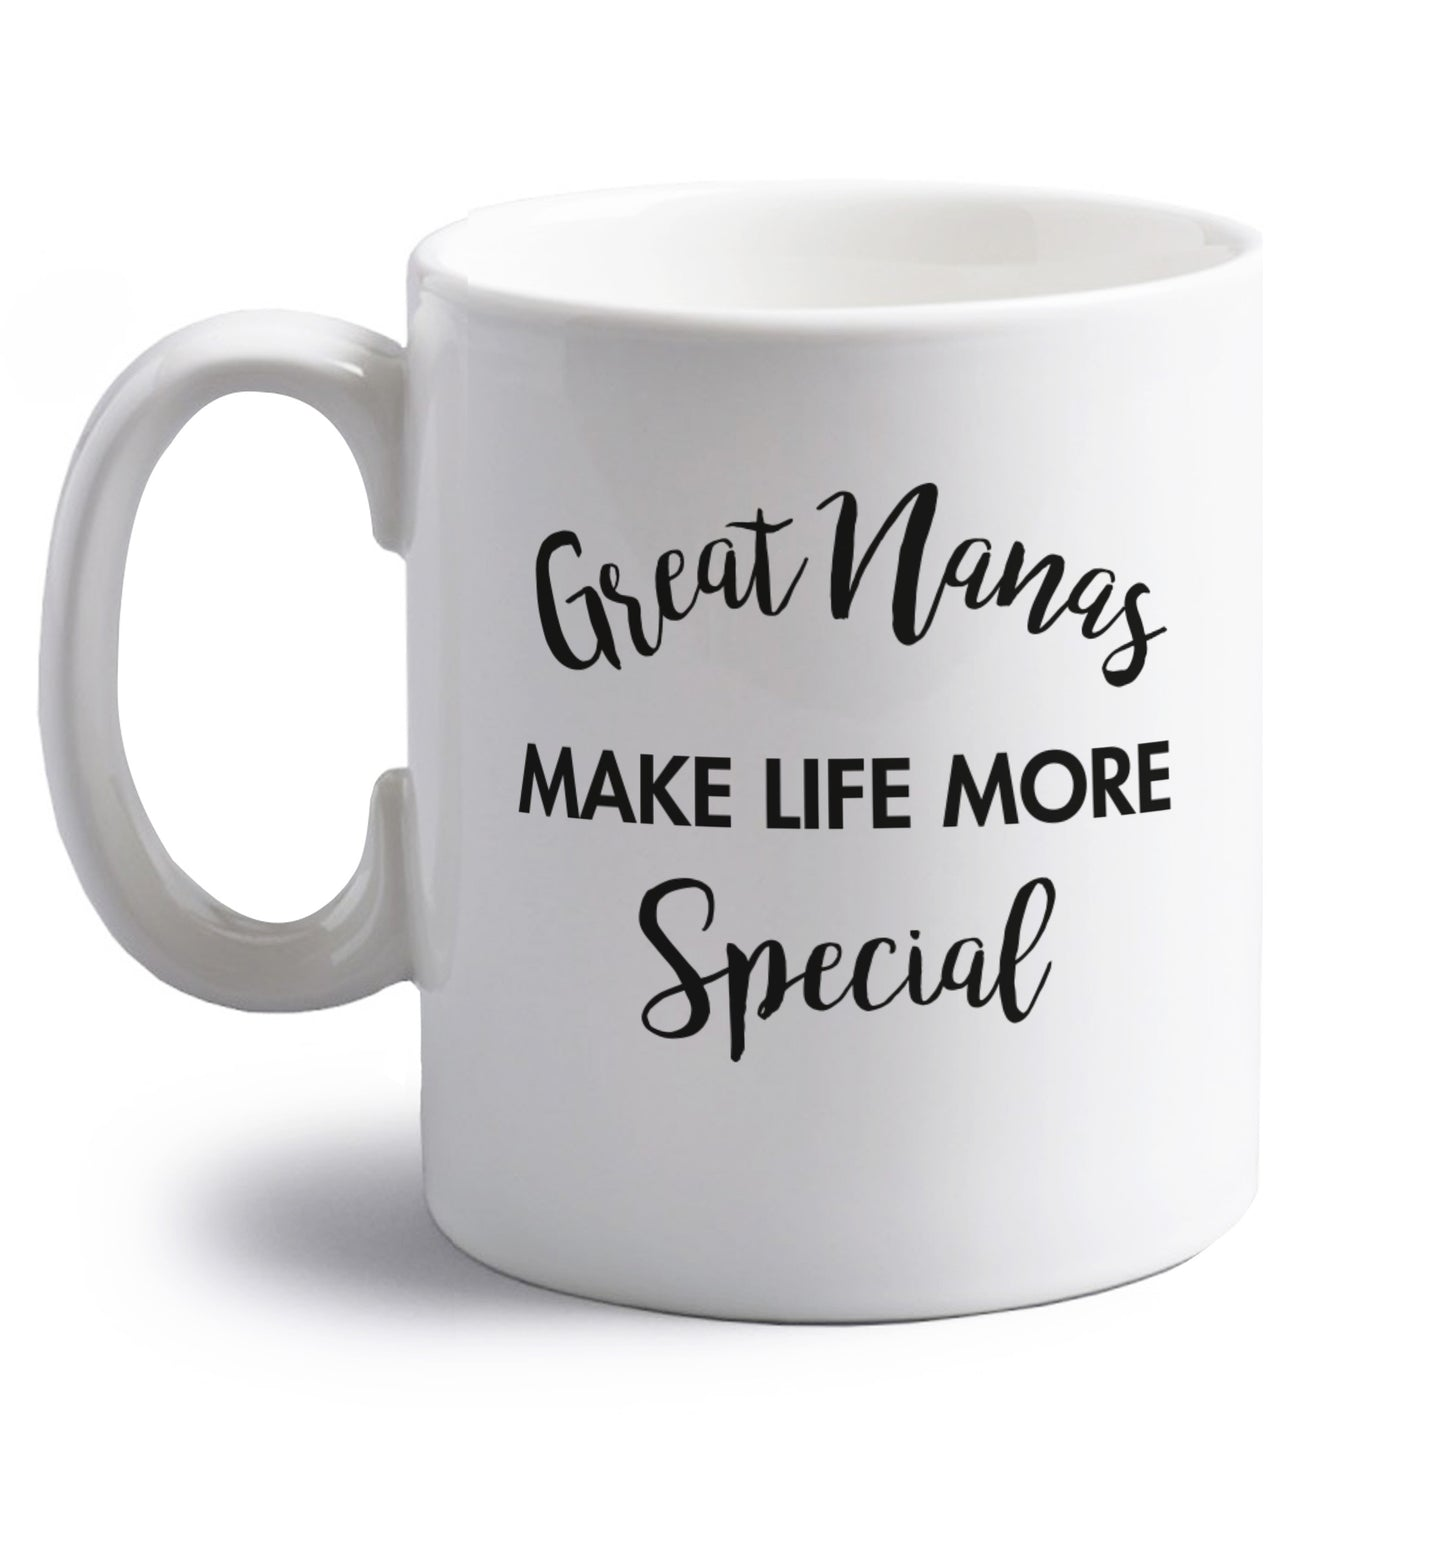 Great nanas make life more special right handed white ceramic mug